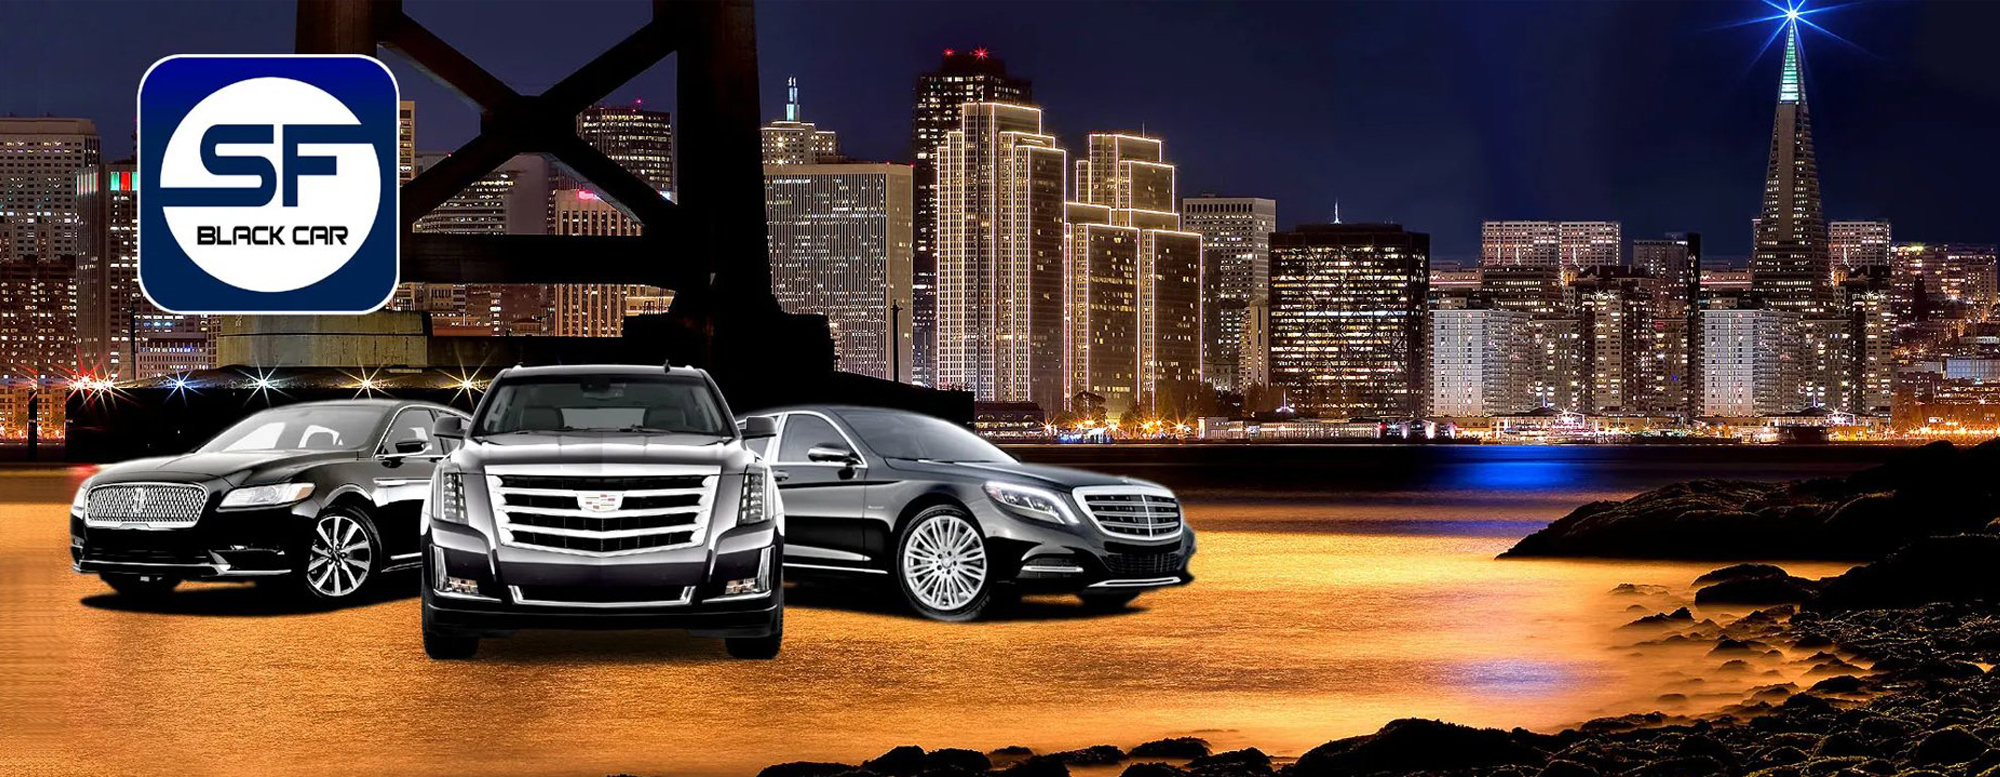 Bay Area Limousine San Francisco Car Service Airport Transportation